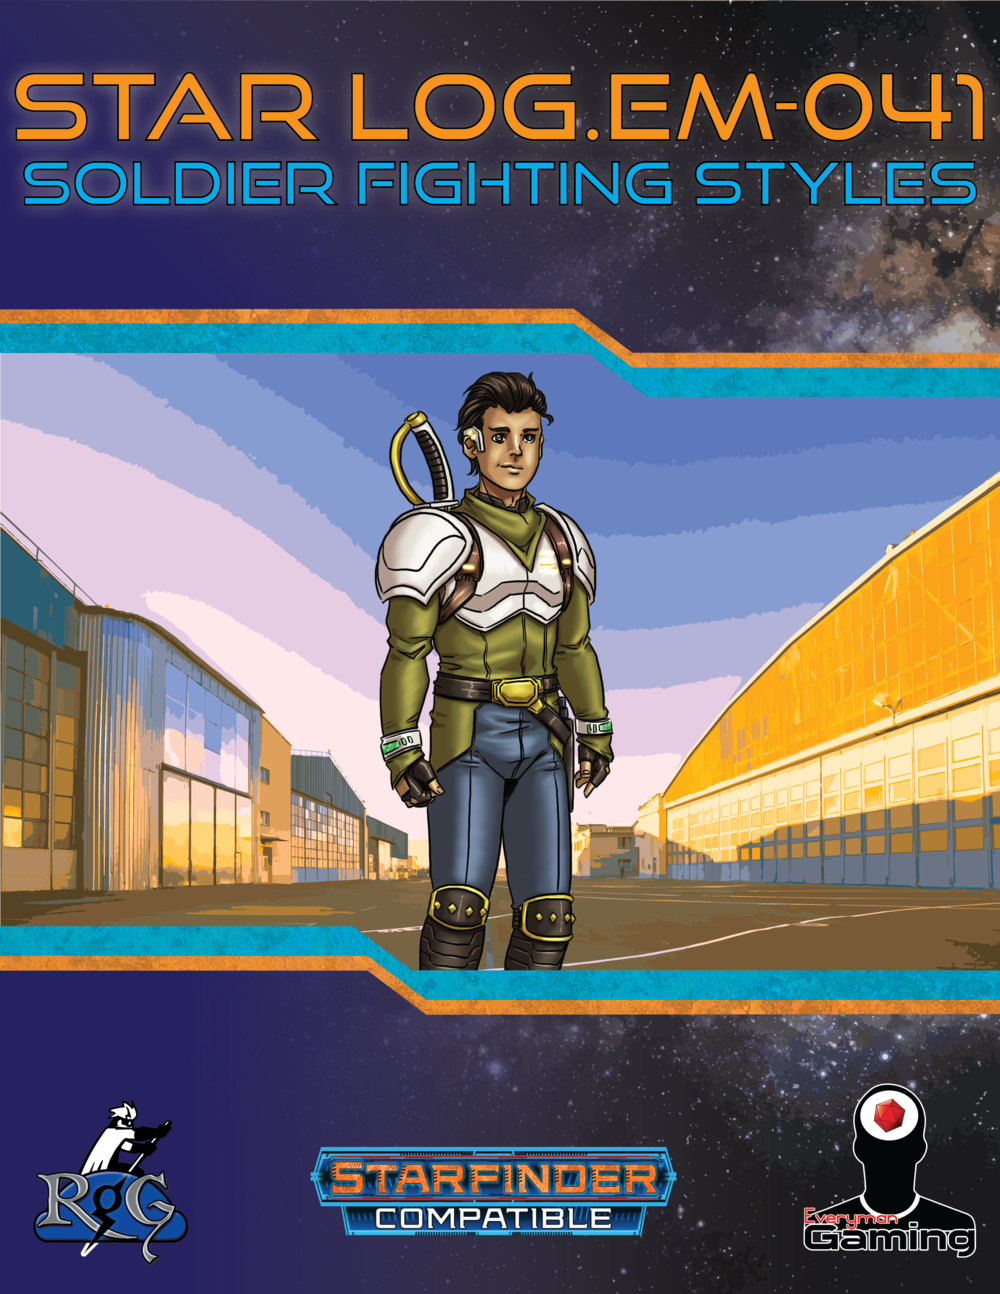 SF041 Soldier Fighting Styles.png